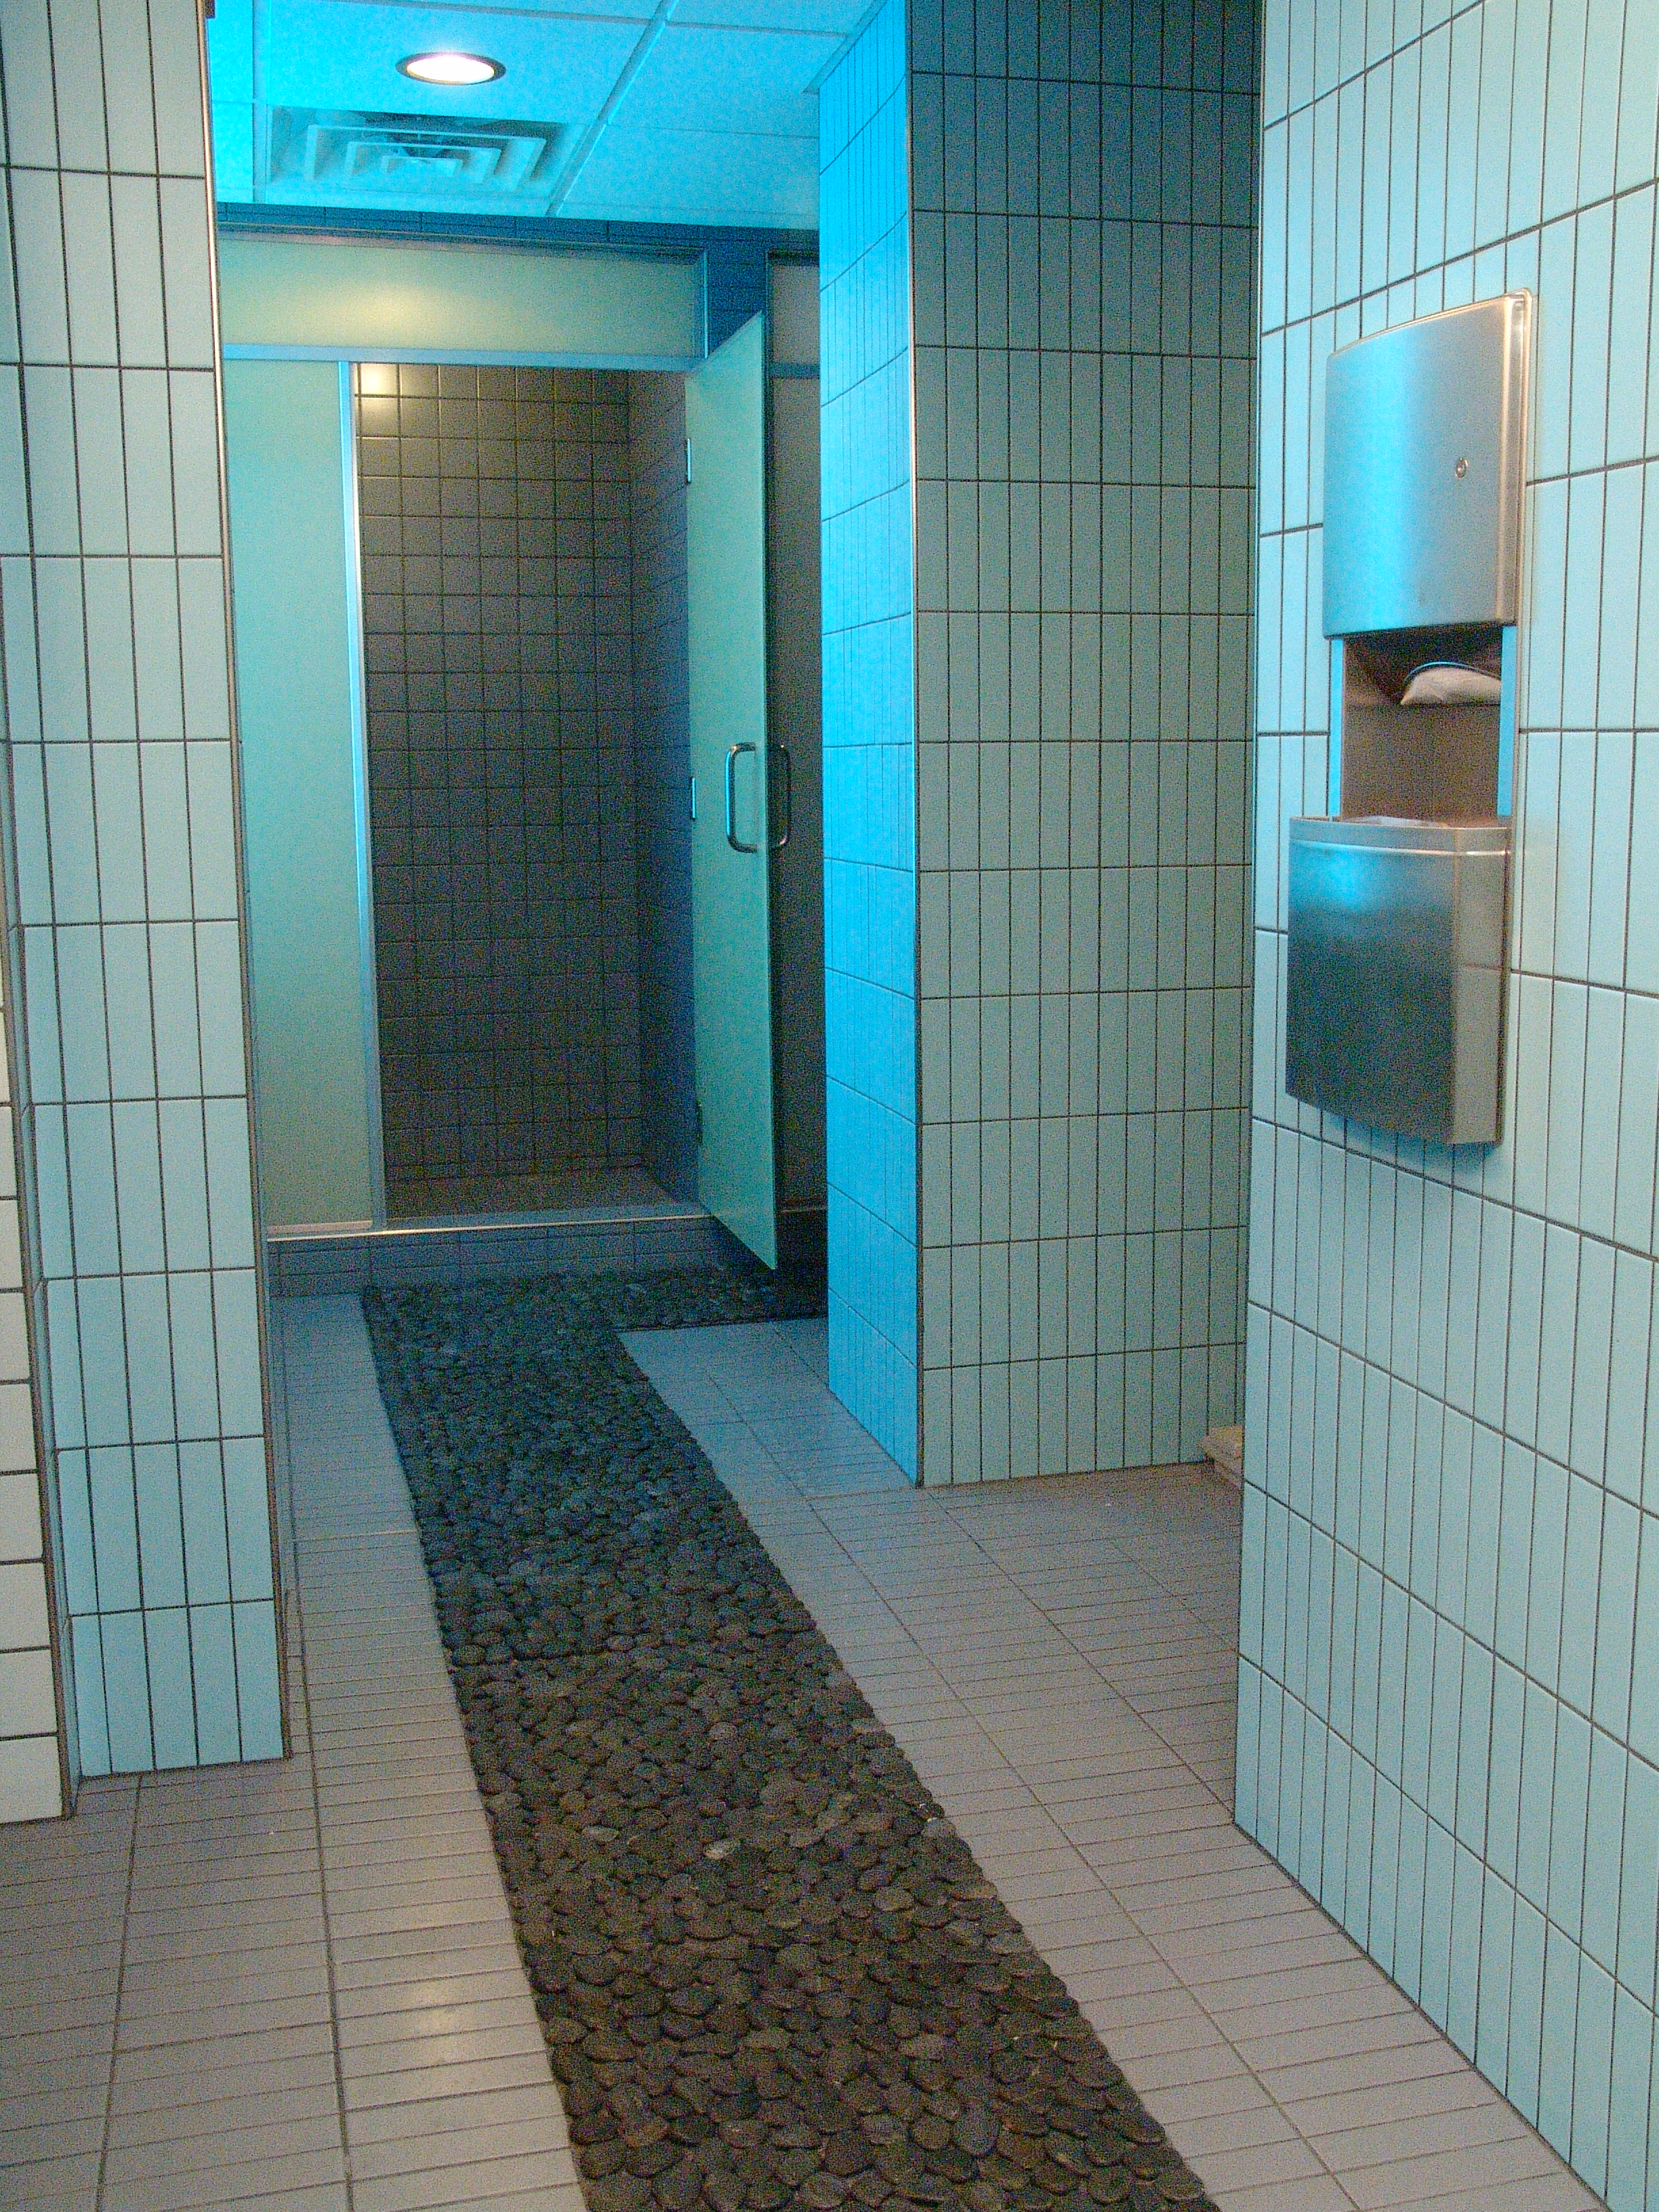 004-pebble path and commercial tile in shower area_3880.JPG